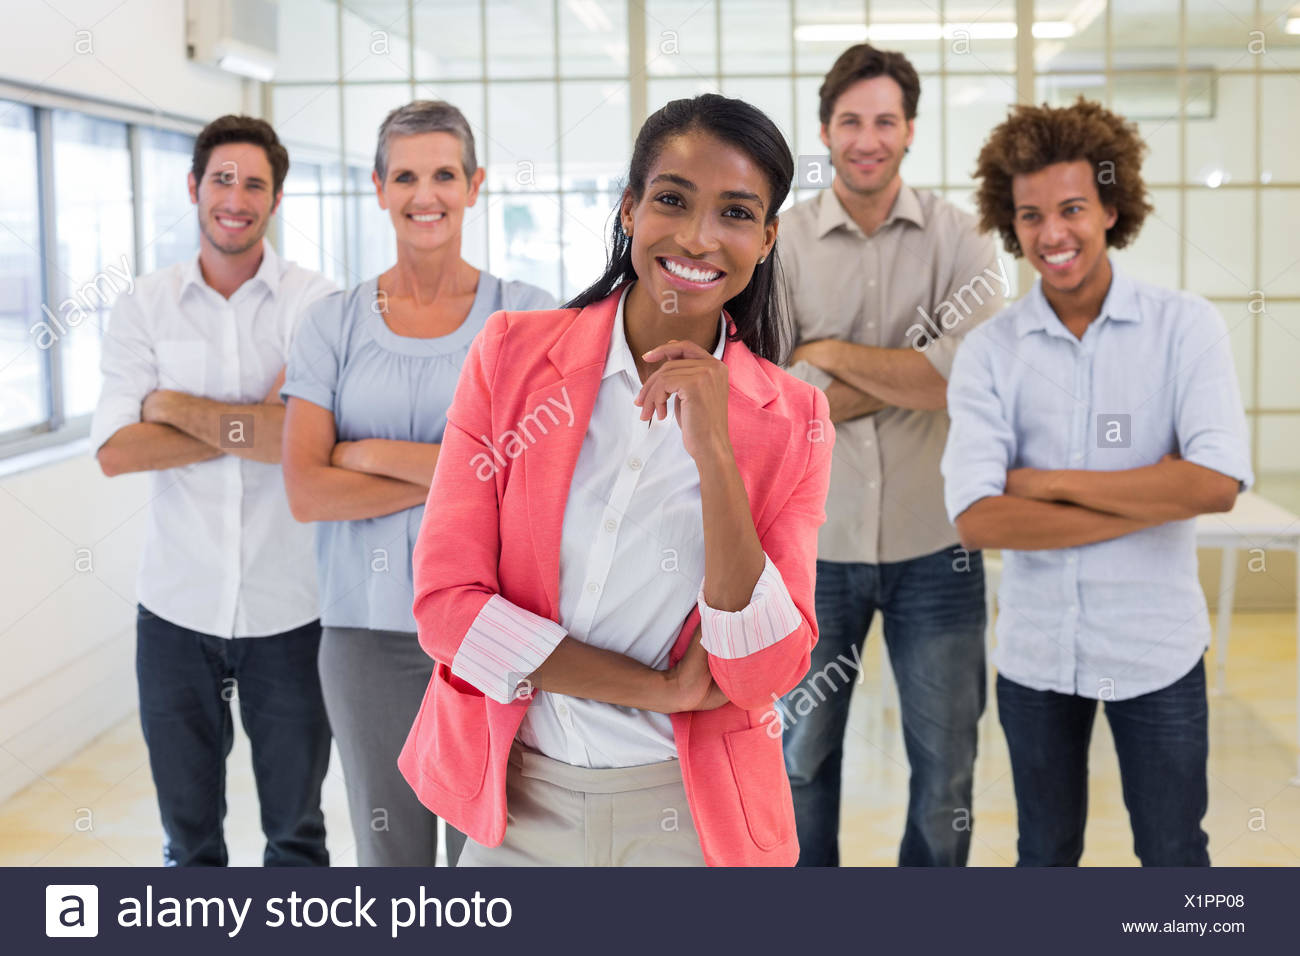 Well dressed workers with arms folded smiling at camera - Stock Image